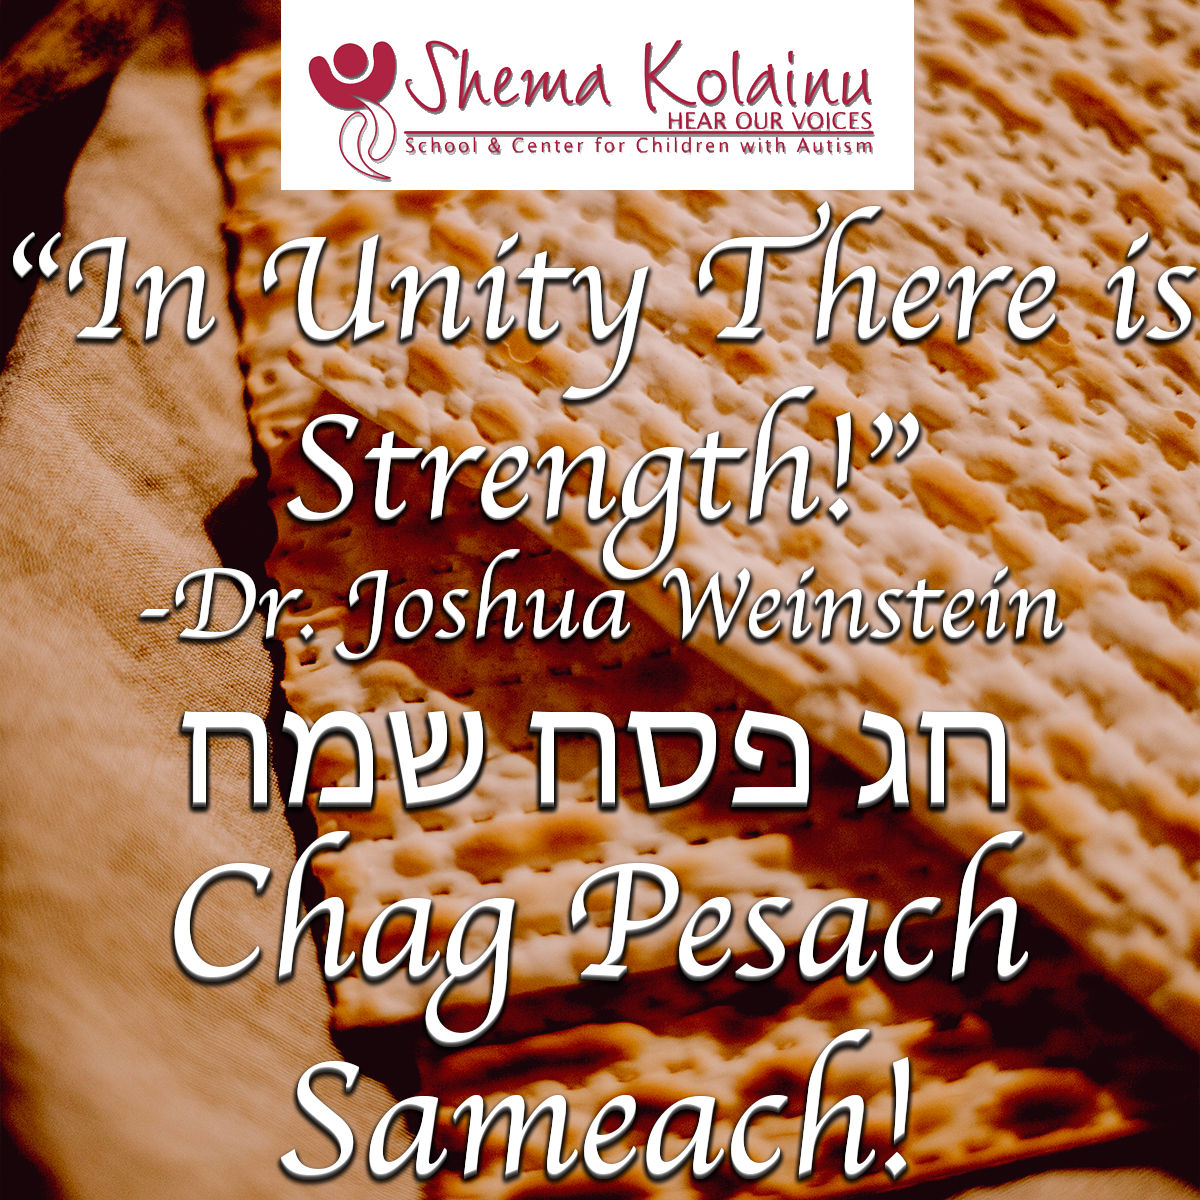 Happy Passover from Everyone at Shema Kolainu - Hear Our Voices